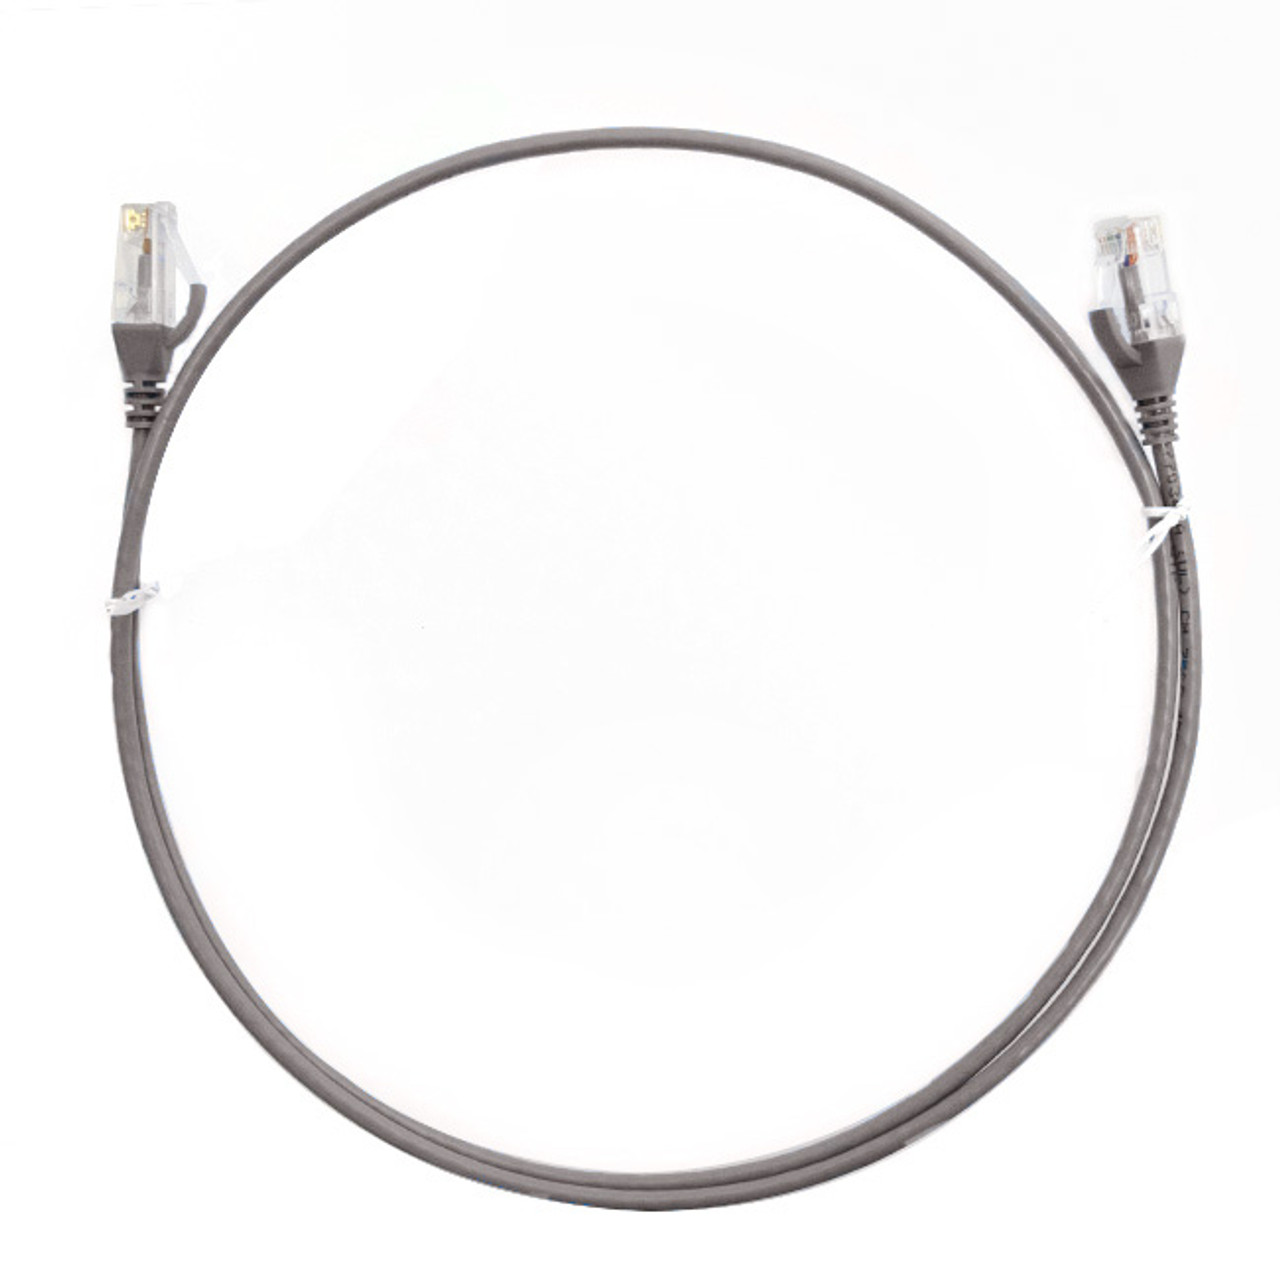 Image for 0.5m Cat 6 Ultra Thin LSZH Ethernet Network Cables: Grey CX Computer Superstore